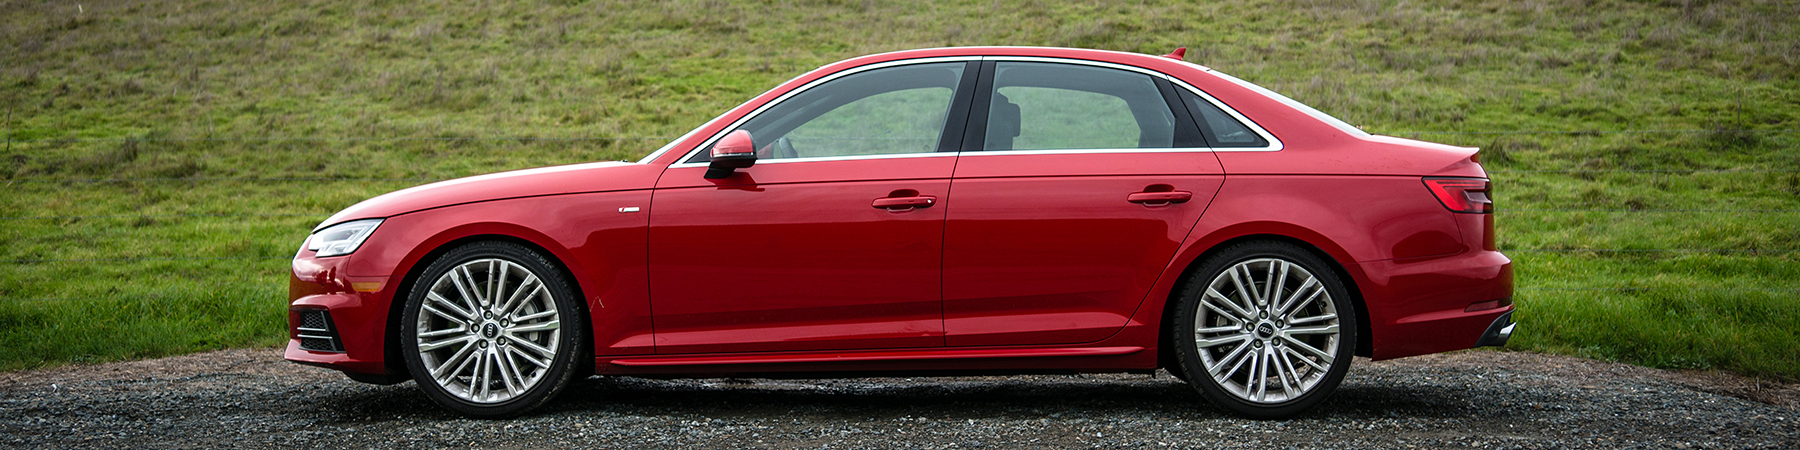 This Tango Red 2017 Audi A4 Is The Latest Addition To 034motorsport Le And Instrumental In Development Of Performance Hardware